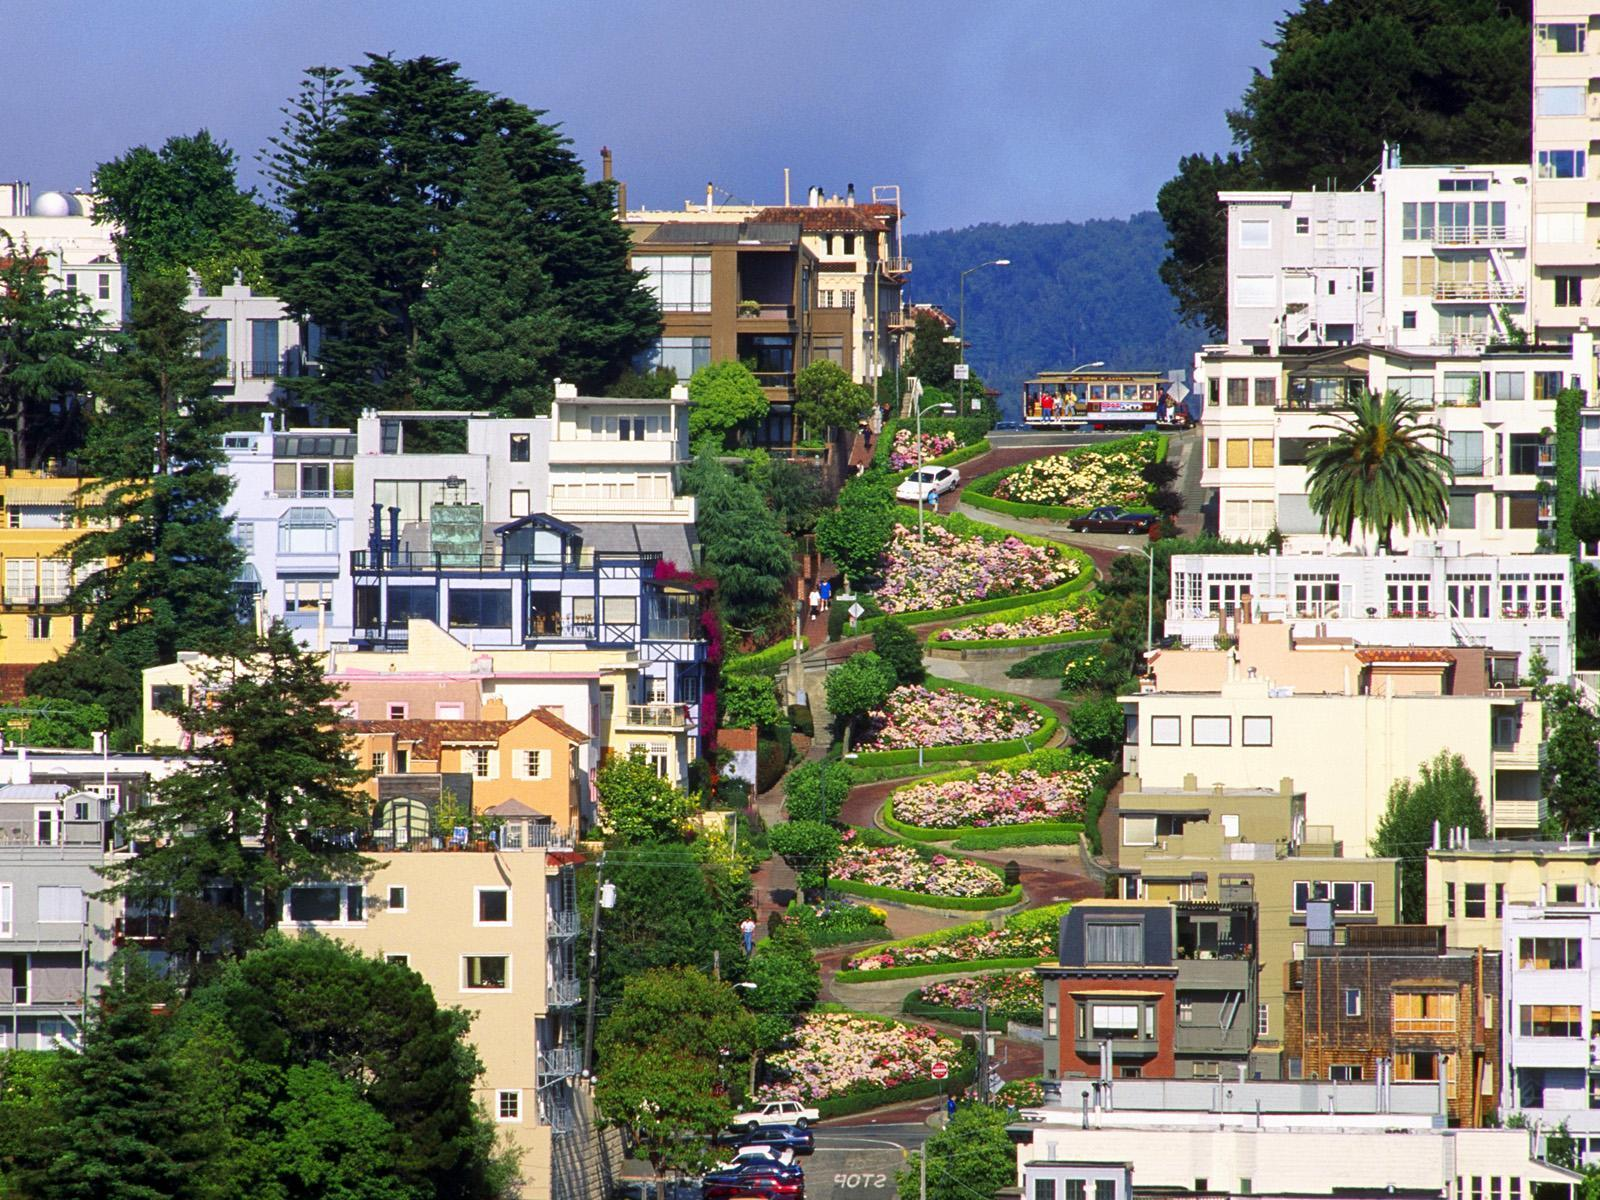 San Francisco Lombard Street Wallpapers 18787